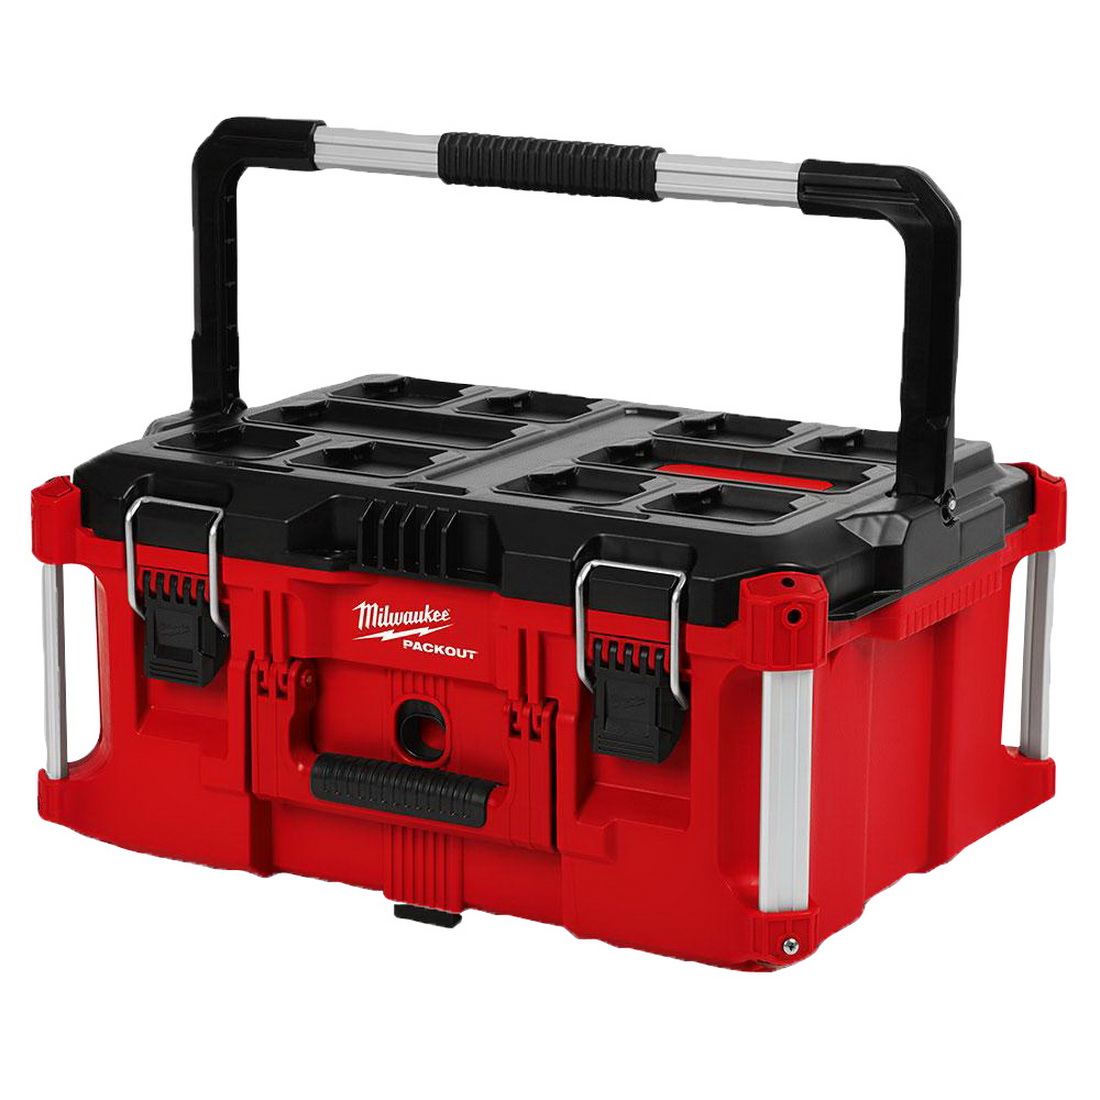 PACKOUT Large Tool Box 45kg 561 x 408 x 287mm Polymer 48228425